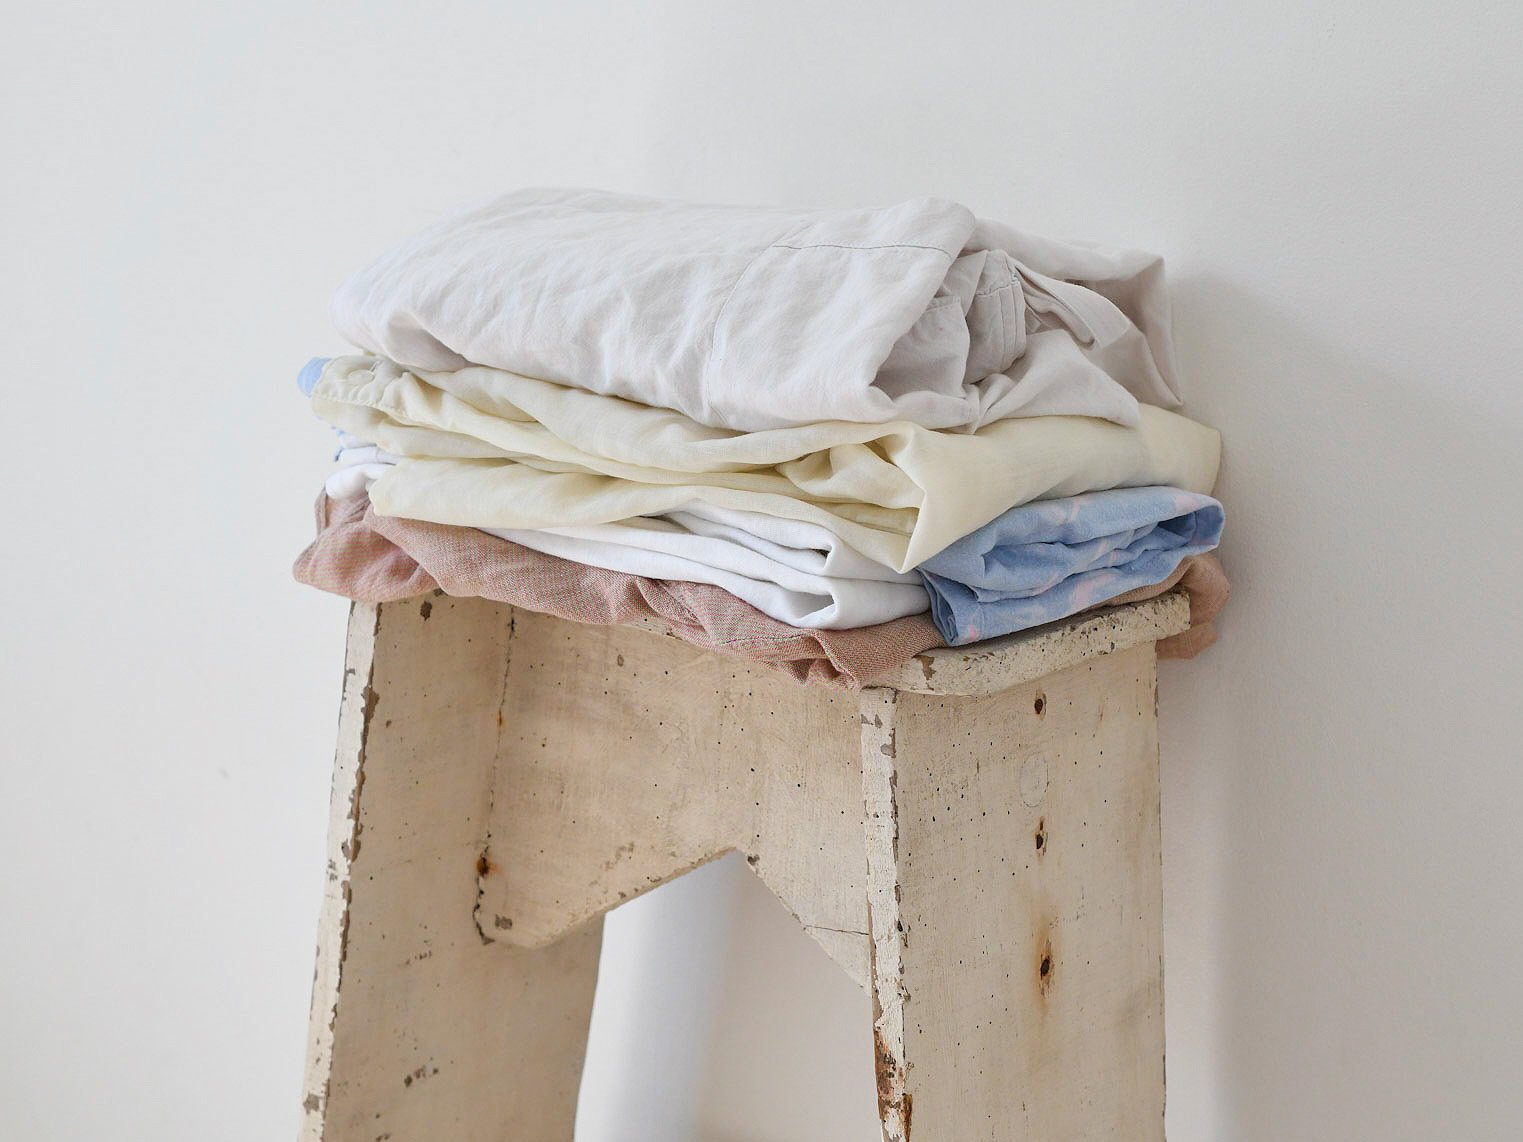 Folded laundry rests on top of a small weathered ladder leaning against a white wall.